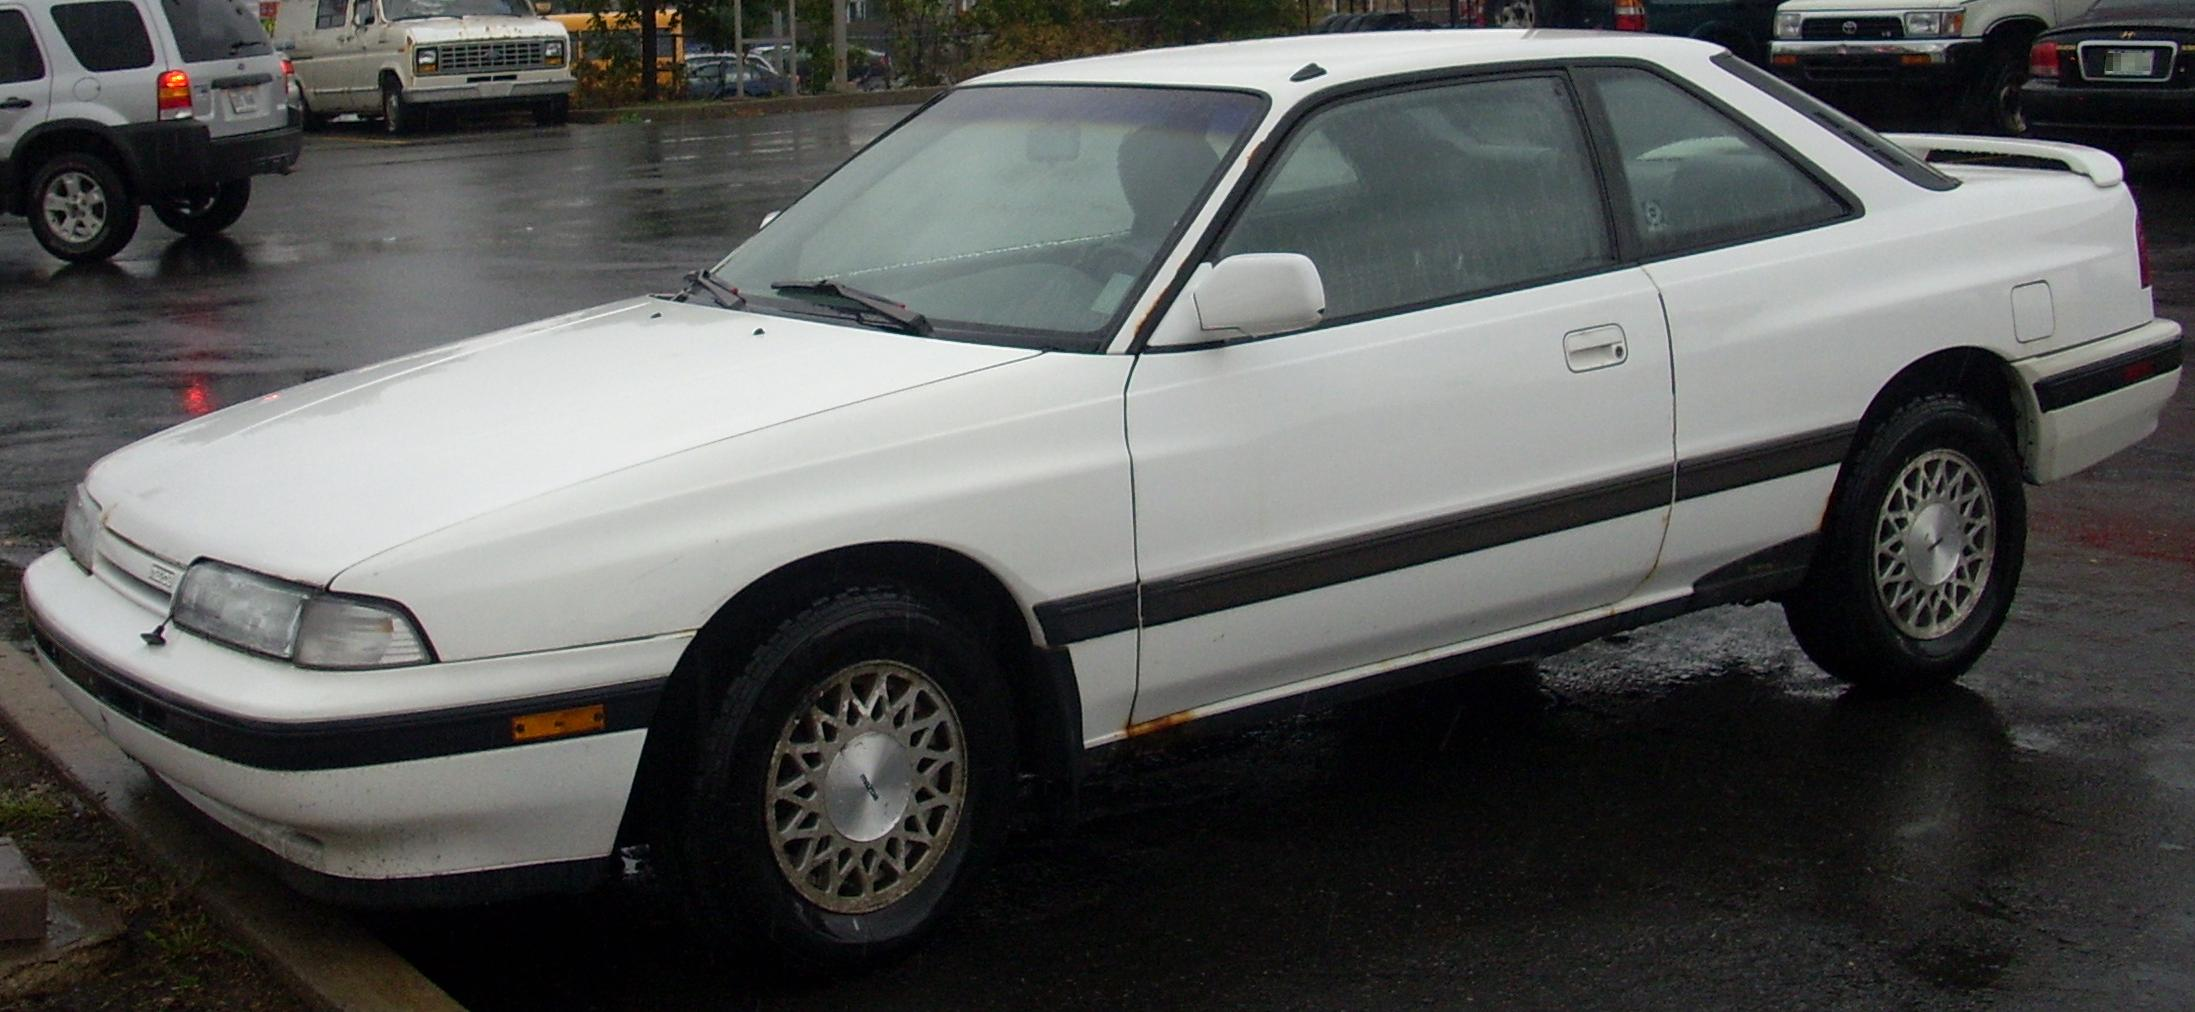 White Mazda Capella 1992